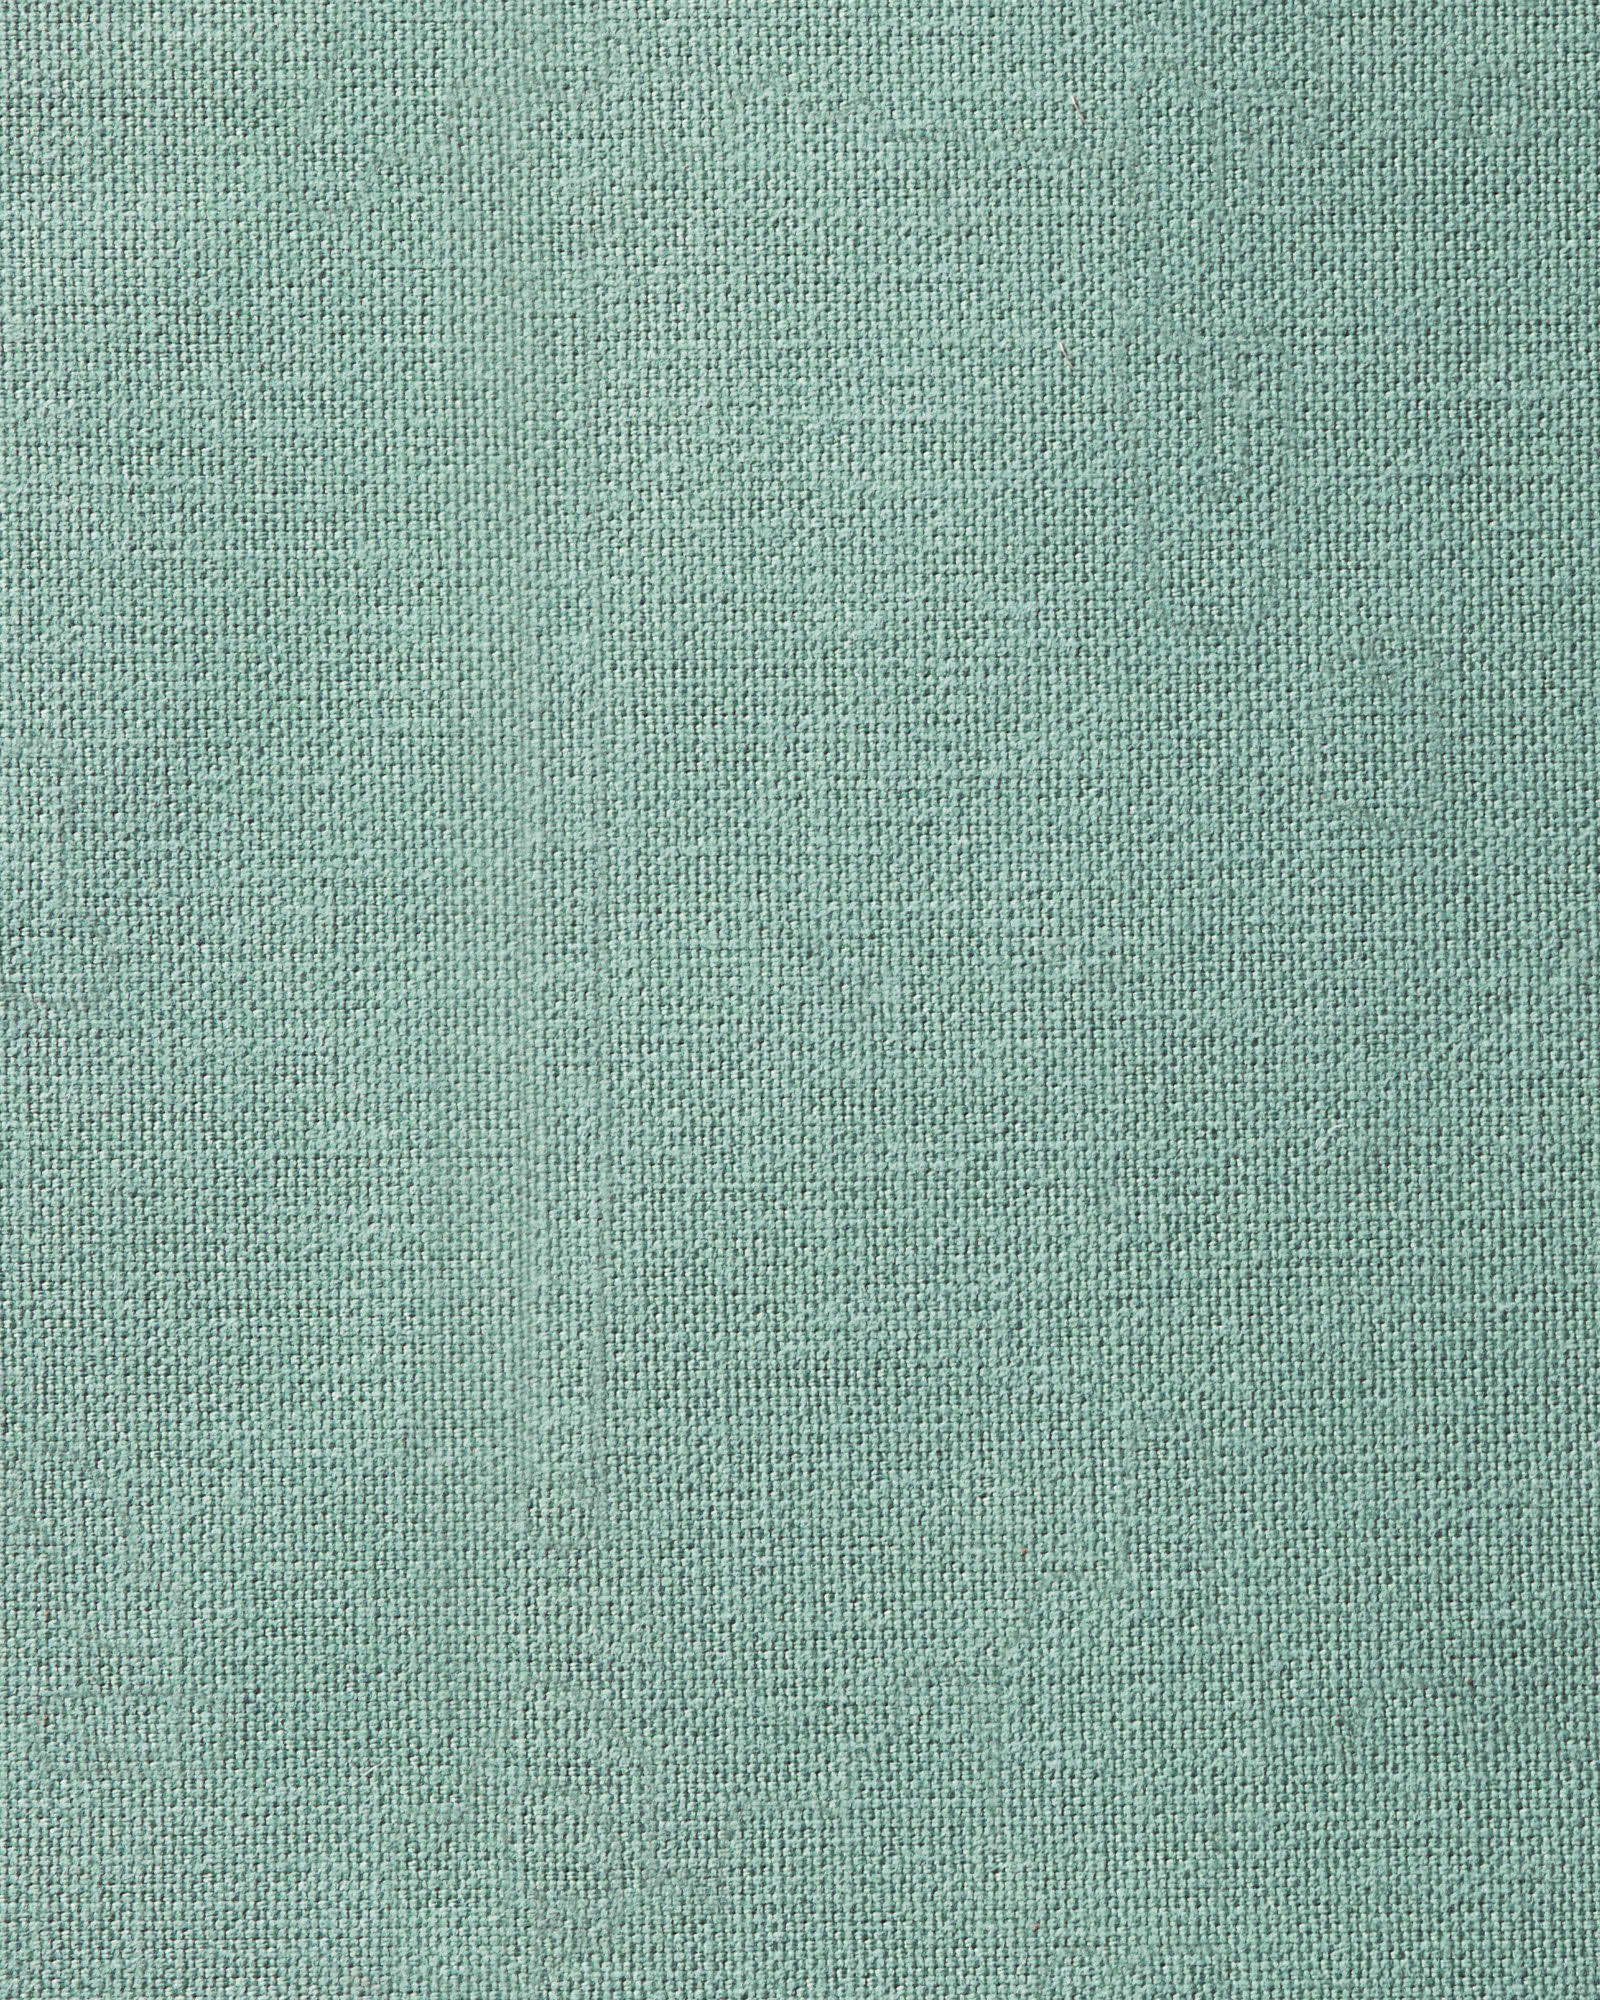 Brushed Cotton Canvas - Oasis,